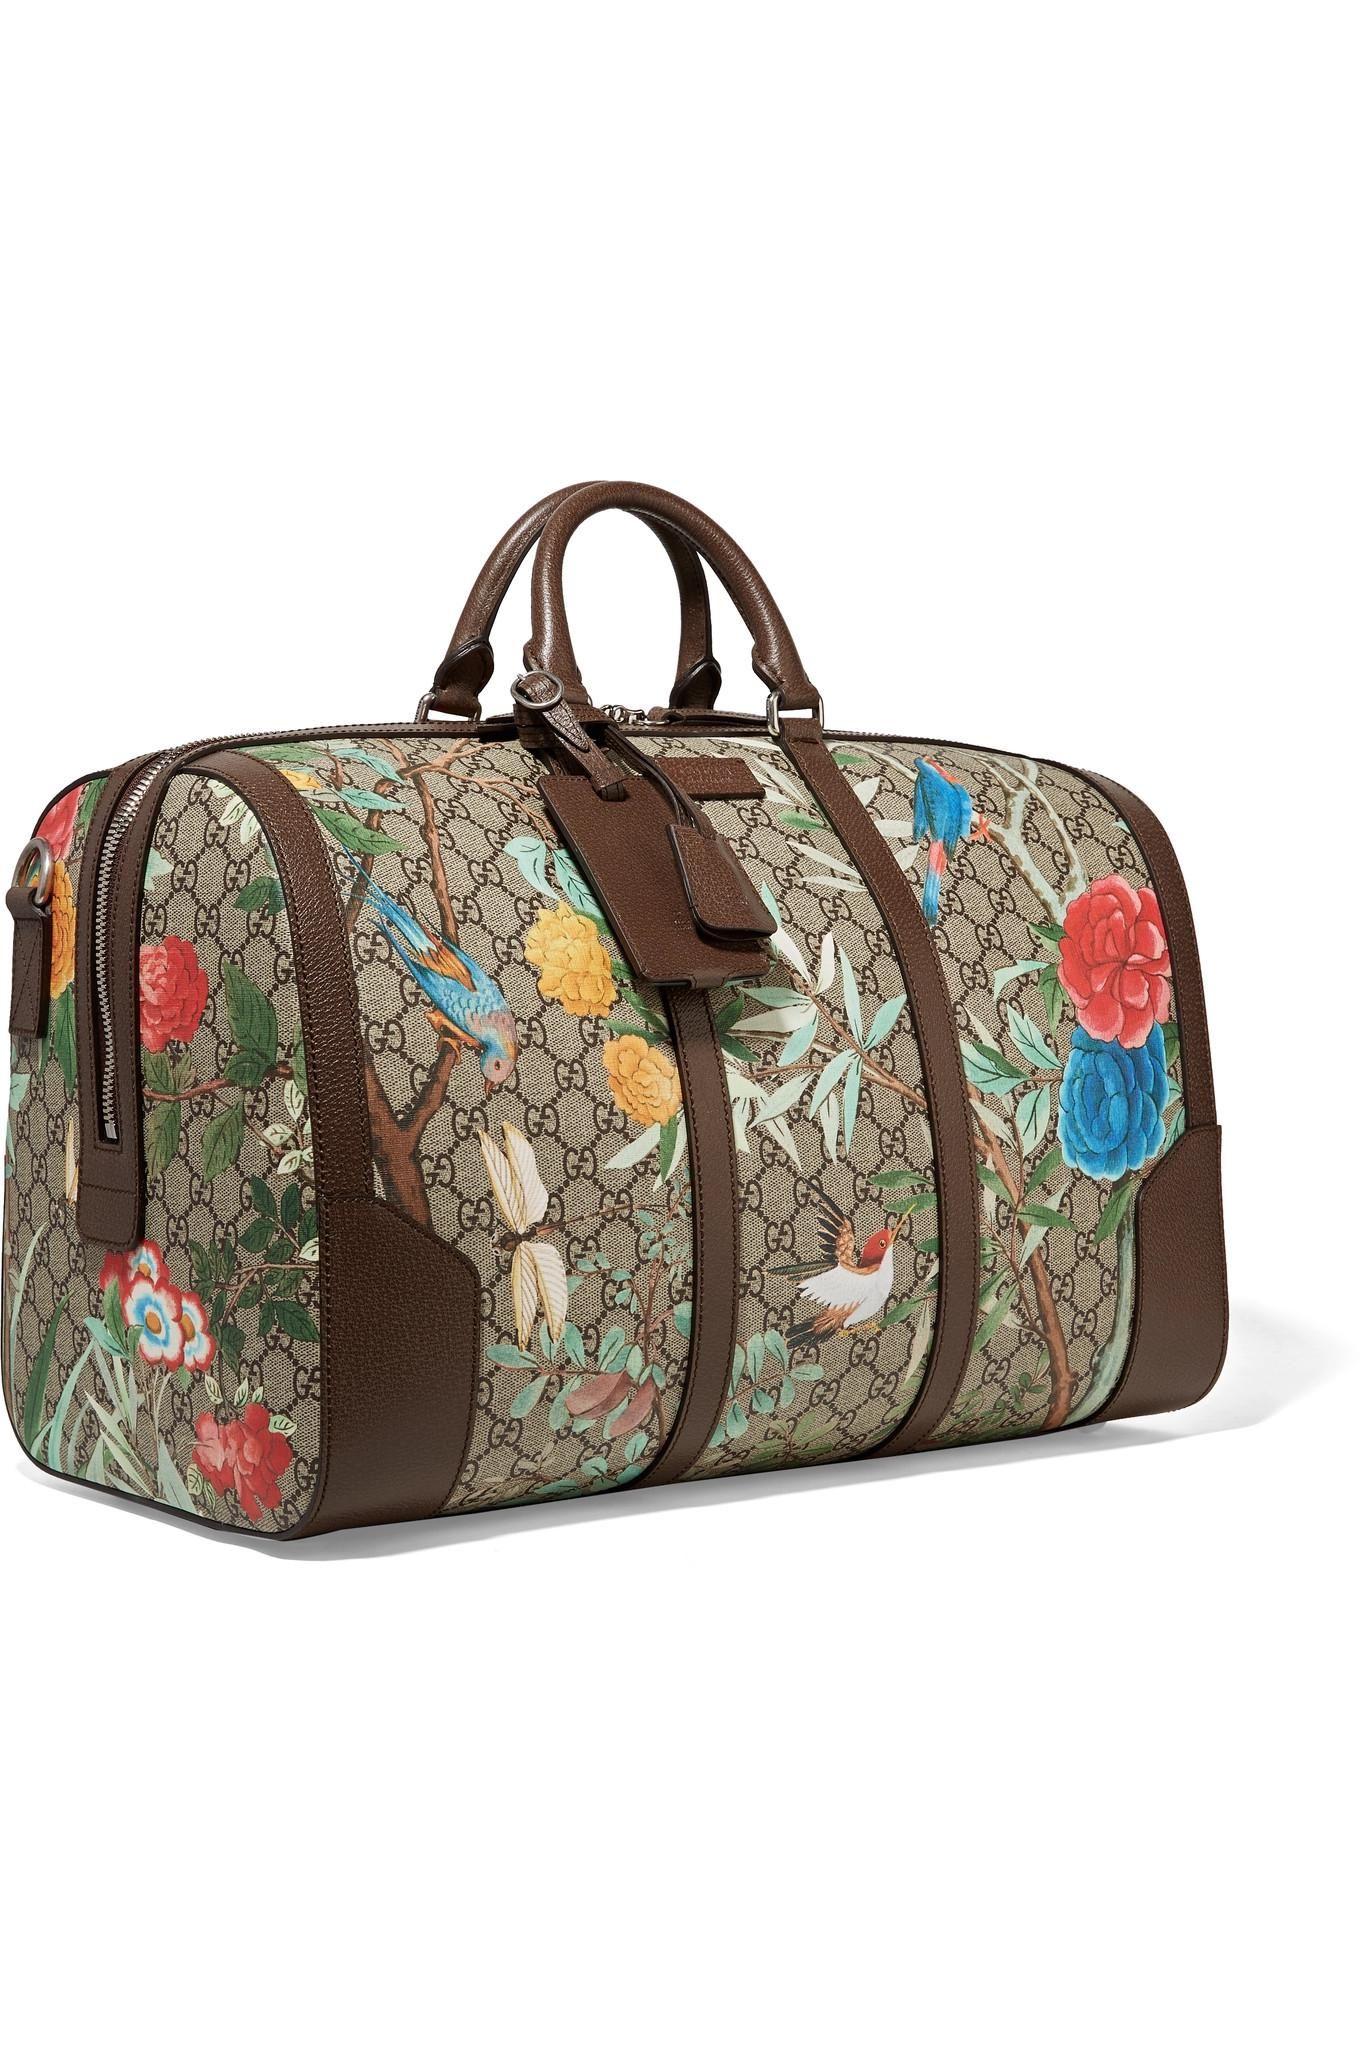 7b29d0a91ae Lyst - Gucci Leather-trimmed Printed Coated-canvas Weekend Bag in ...